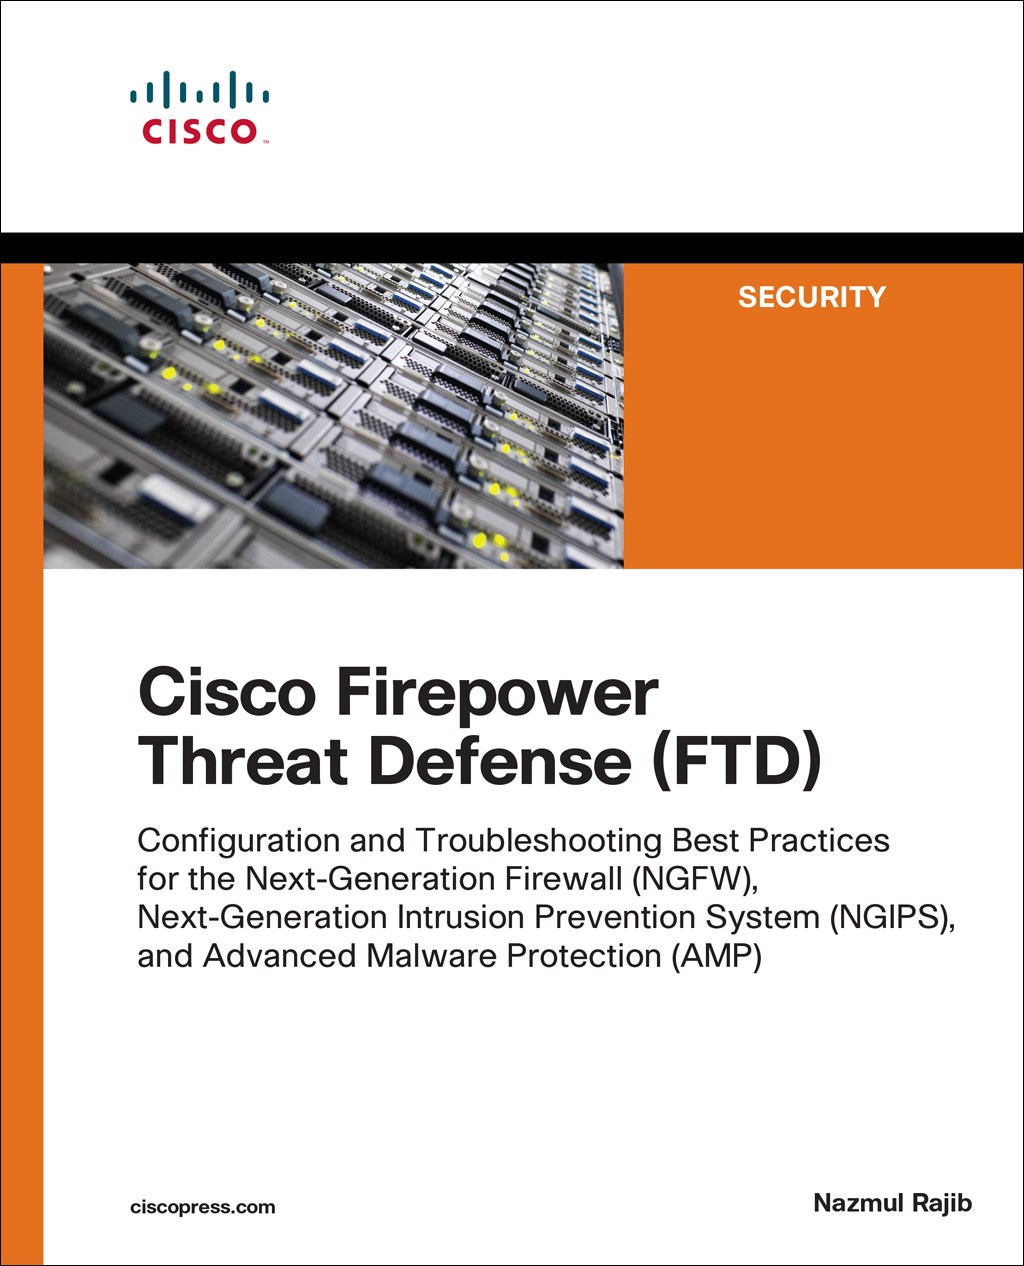 Cisco Firepower Threat Defense (FTD): Configuration and Troubleshooting Best Practices for the Next-Generation Firewall (NGFW), Next-Generation Intrusion Prevention System (NGIPS), and Advanced Malware Protection (AMP), Rough Cuts